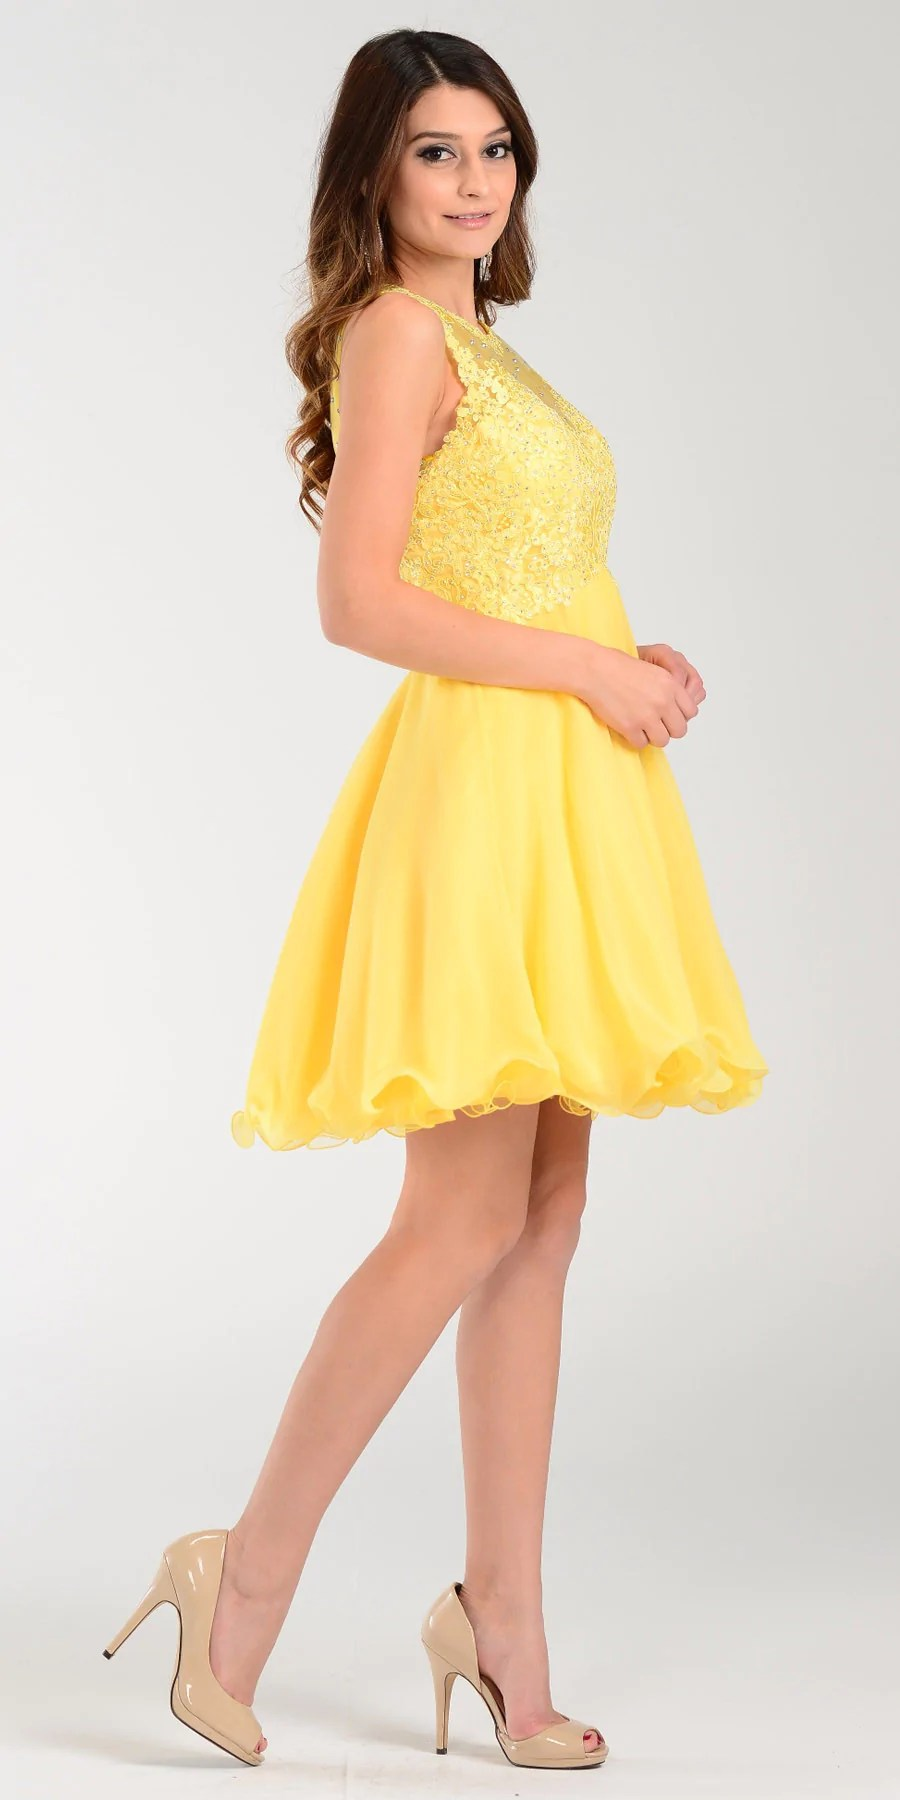 Poly USA 7456 Short A Line Chiffon Prom Dress Yellow Sheer